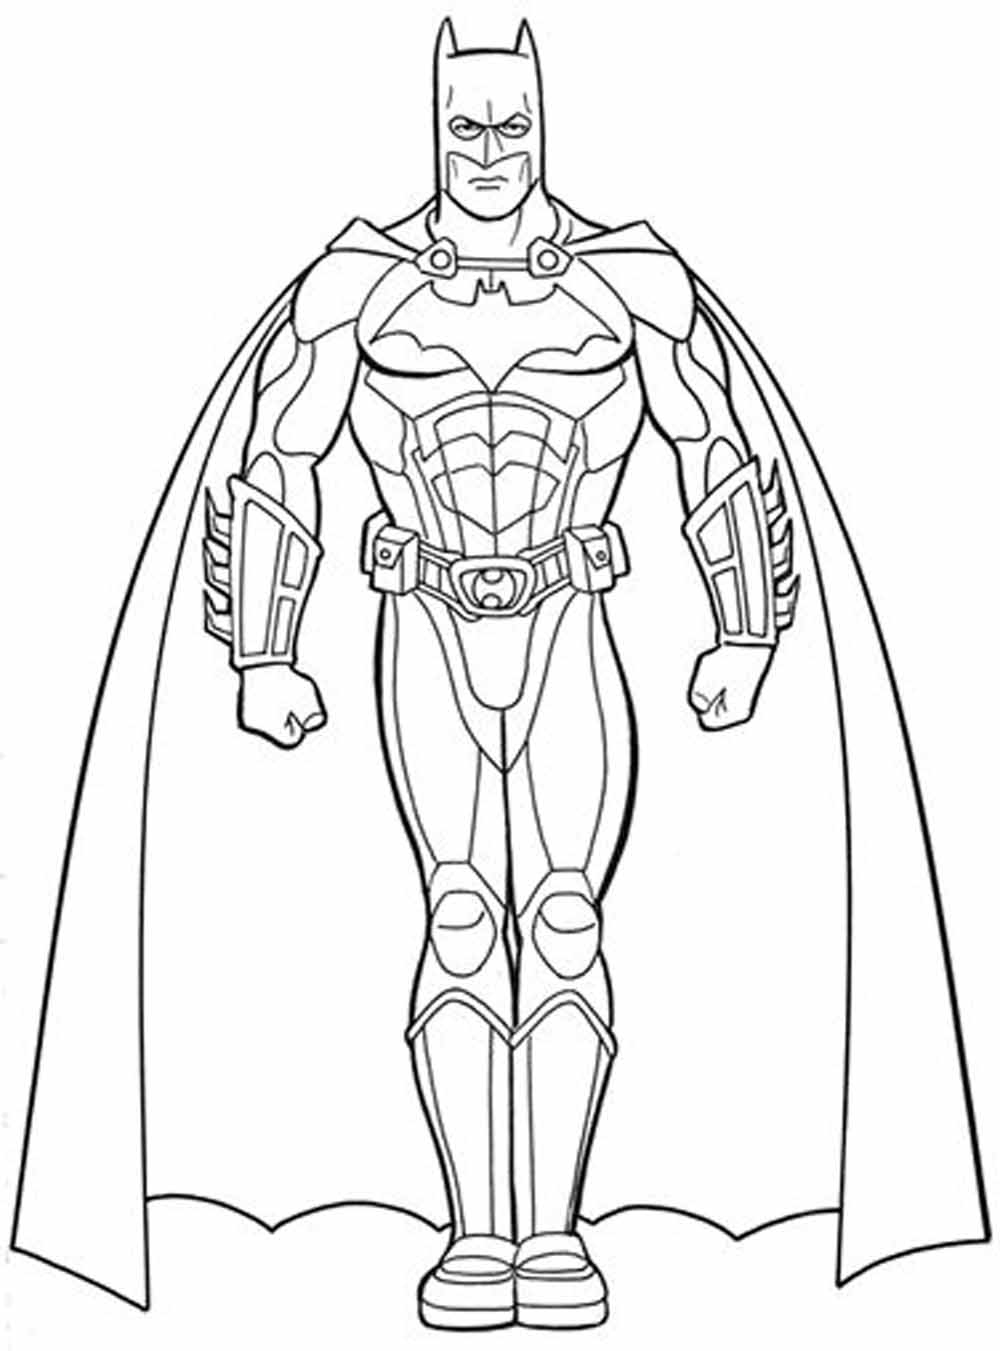 batman coloring sheets printable batman coloring pages download and print batman coloring coloring batman sheets printable